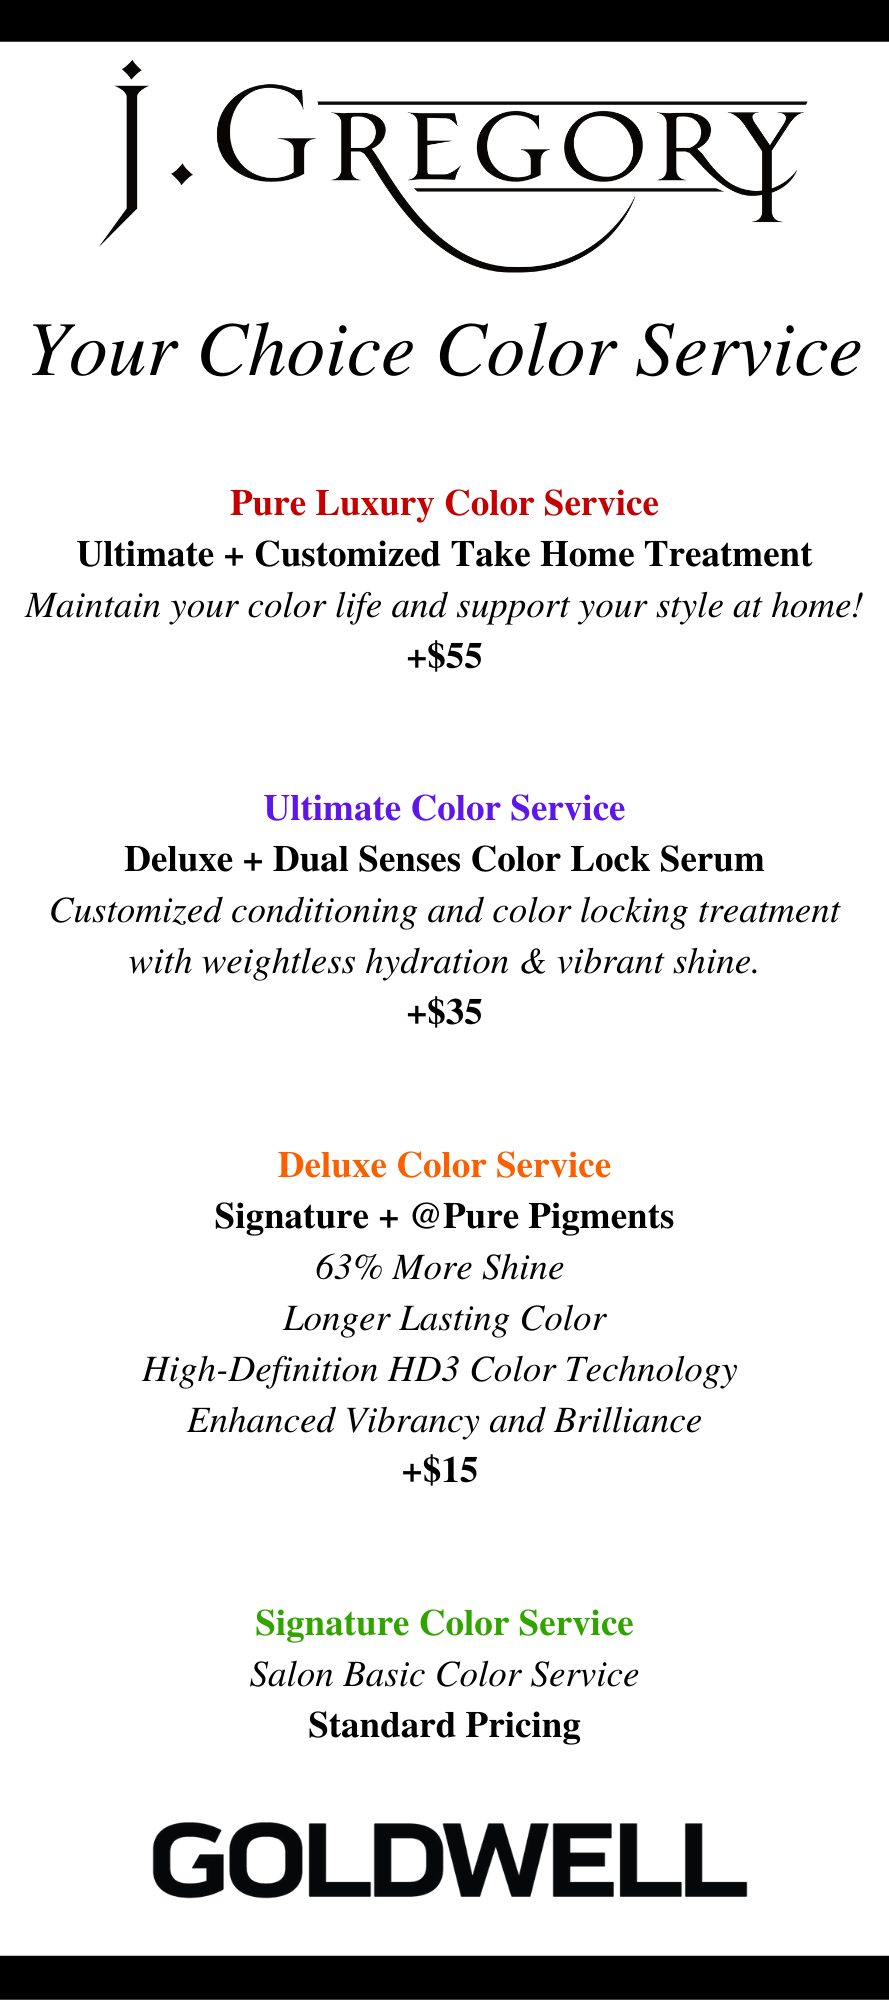 your choice color service